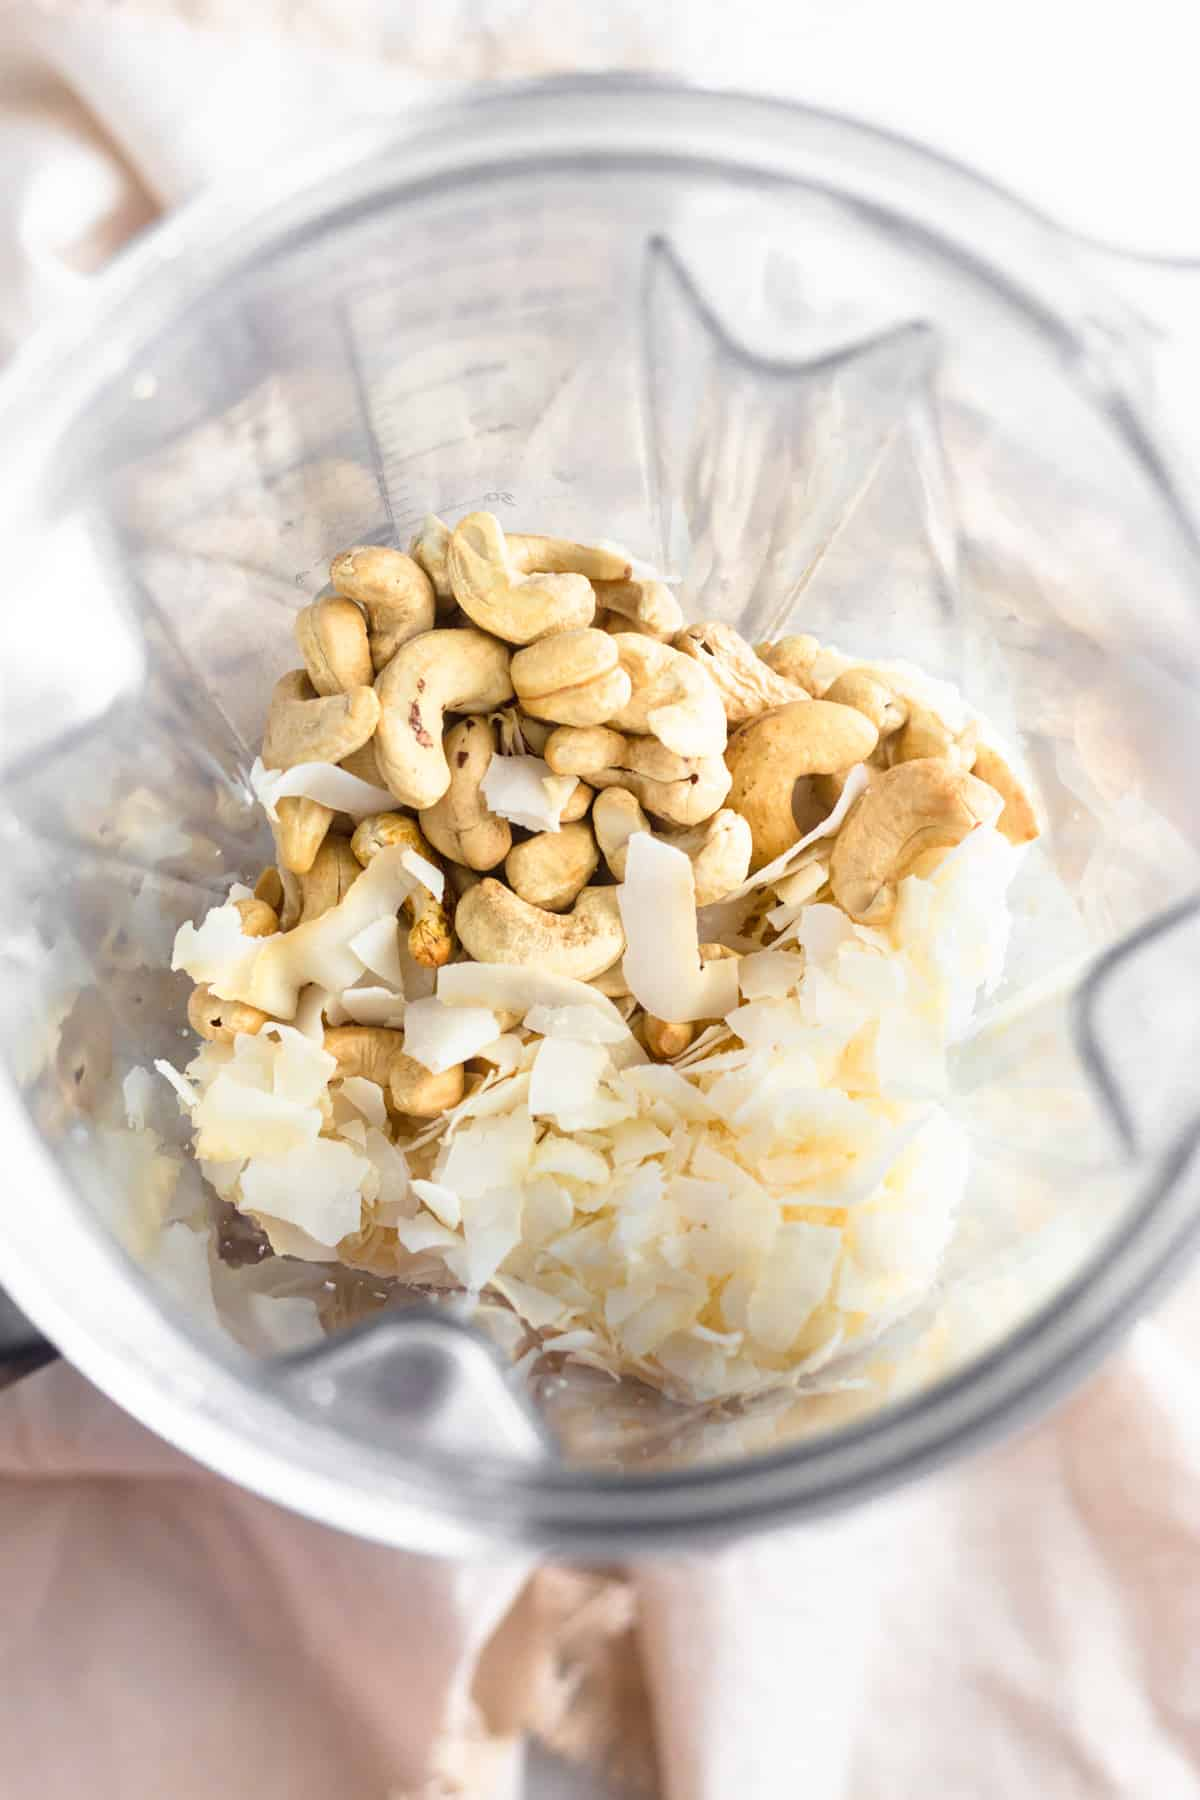 A blender filled with roasted cashews and coconut flakes